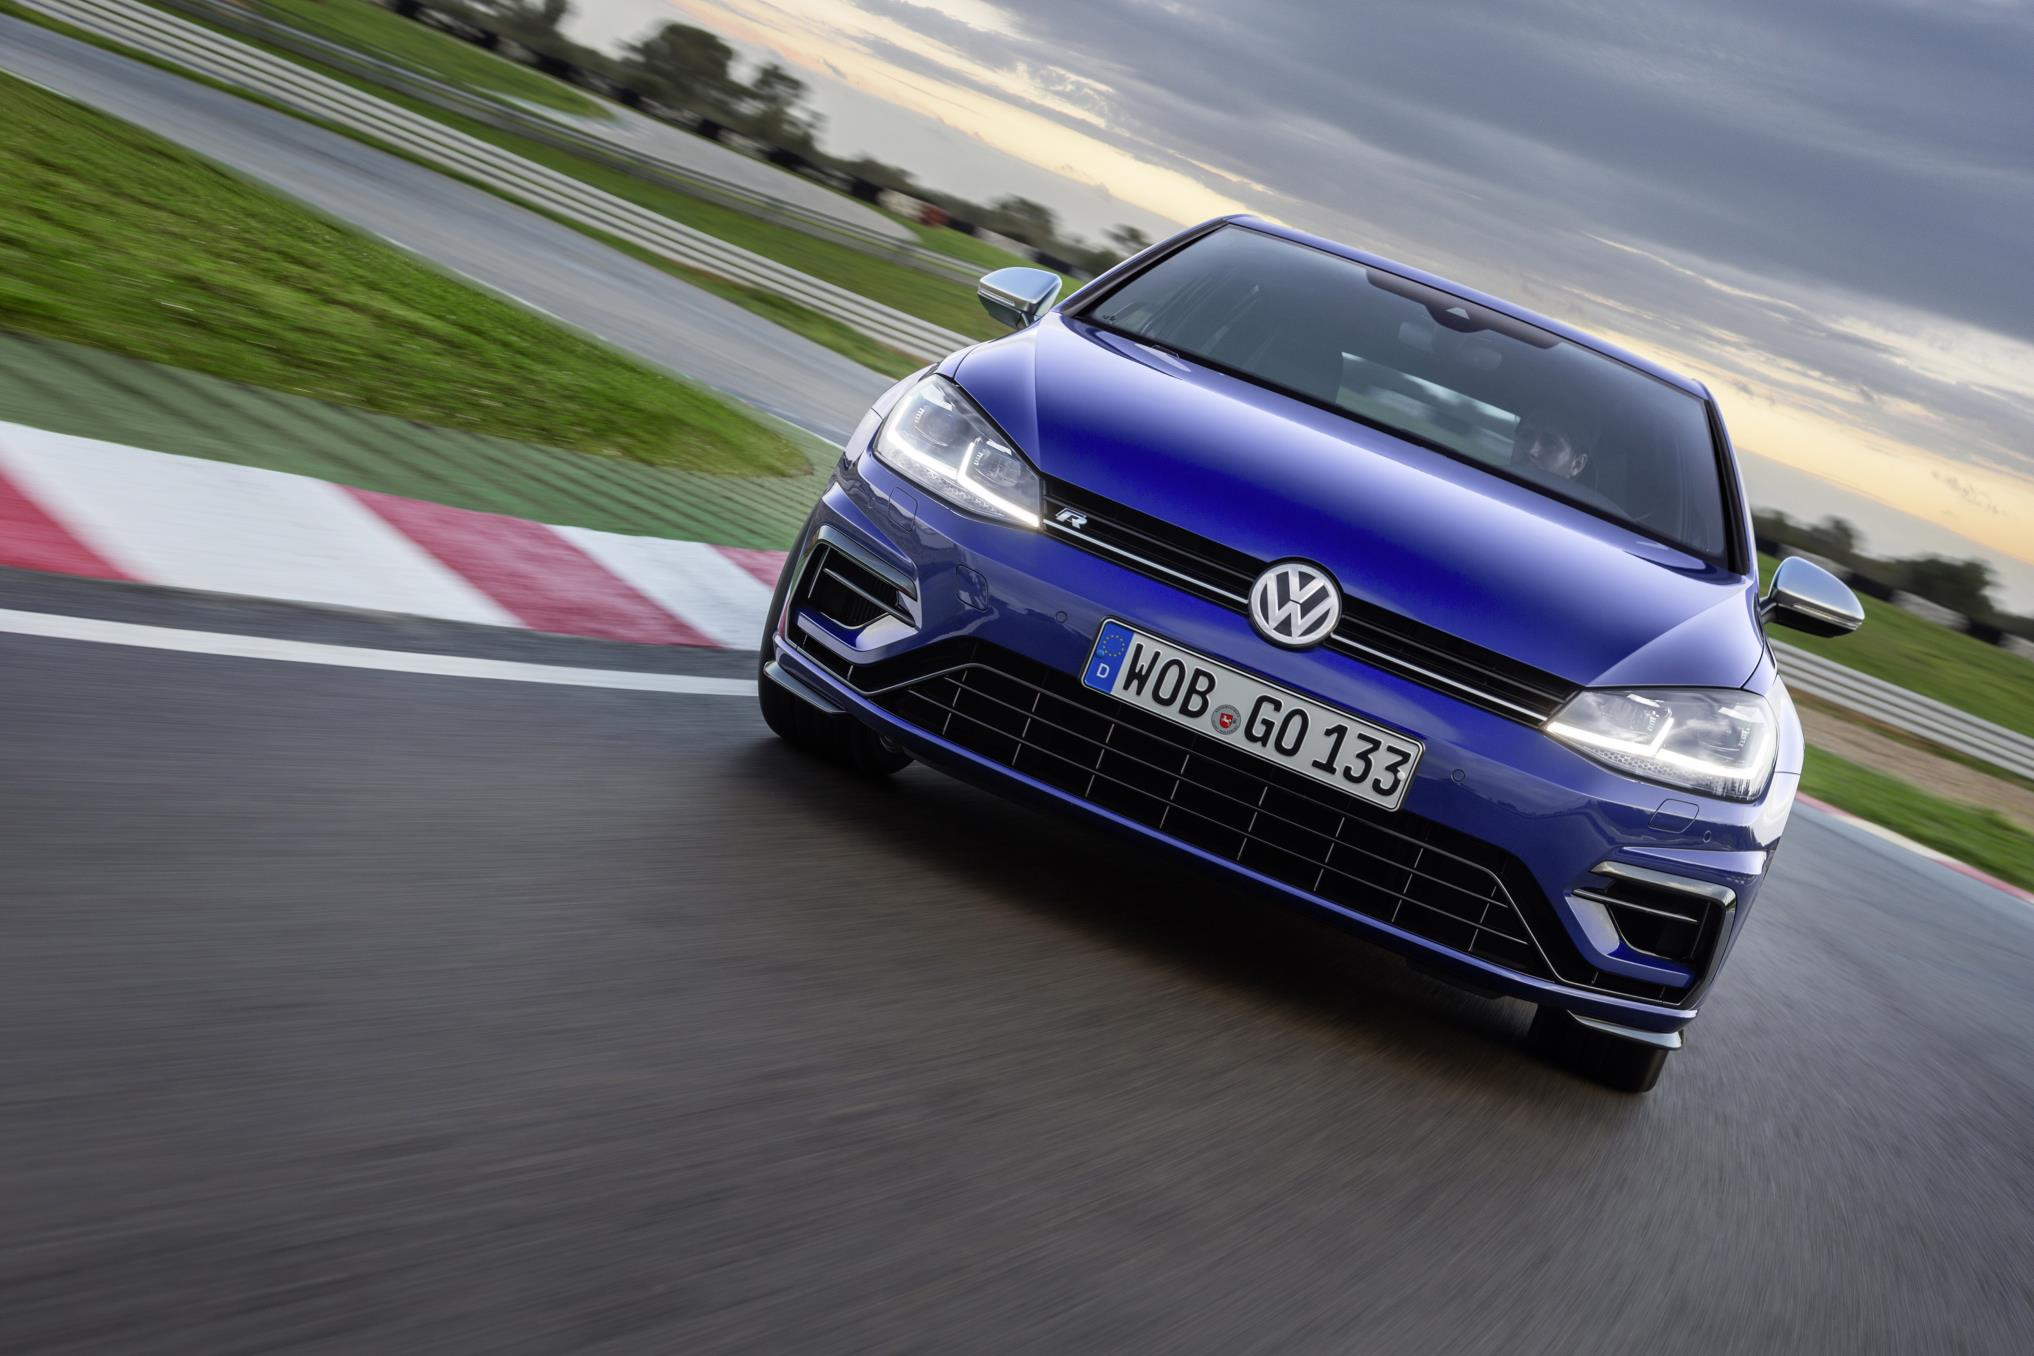 Volkswagen Golf R on a race track